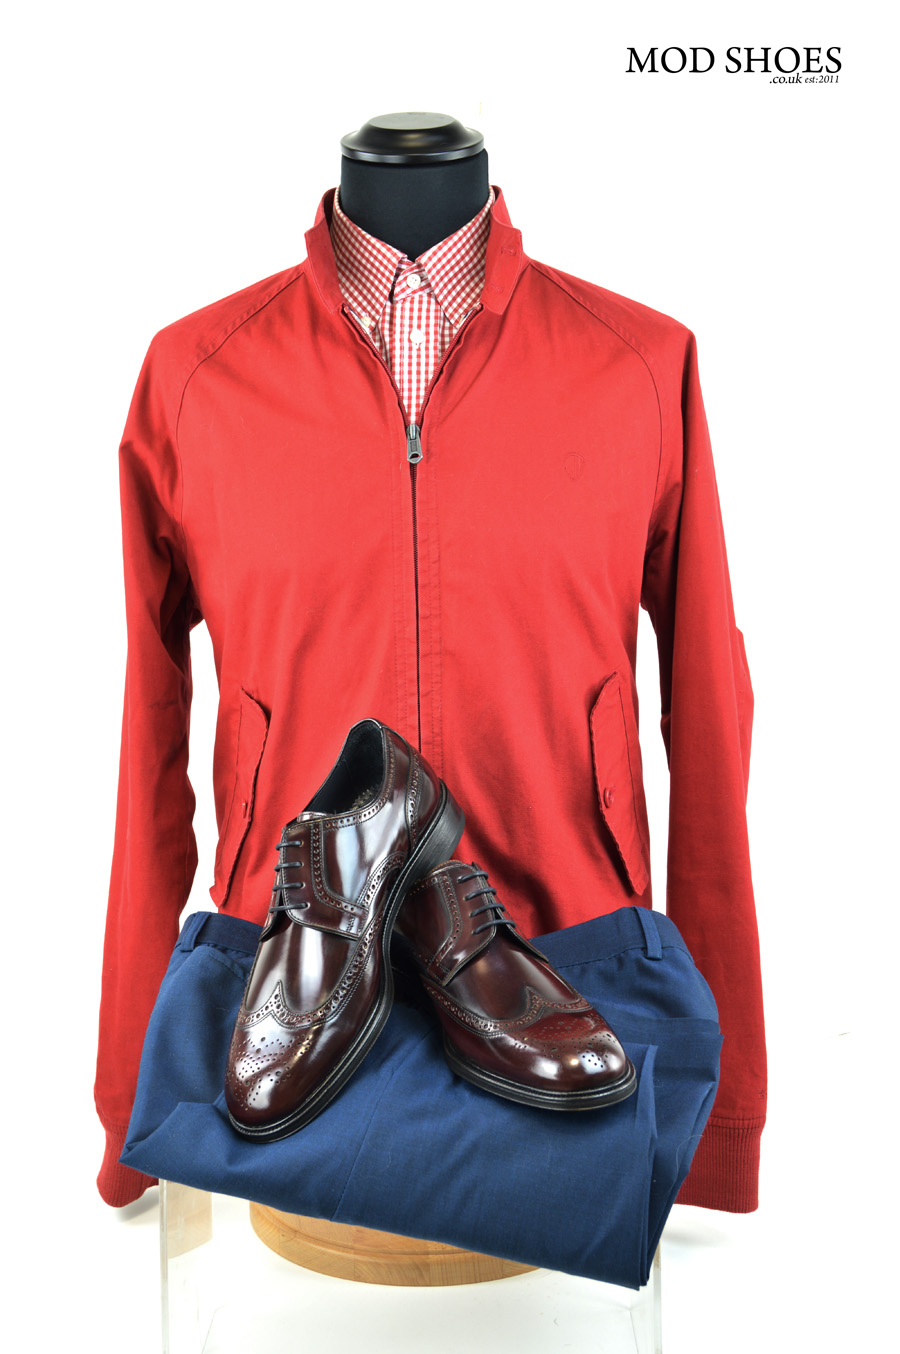 modshoes oxblood brogues with red harrington